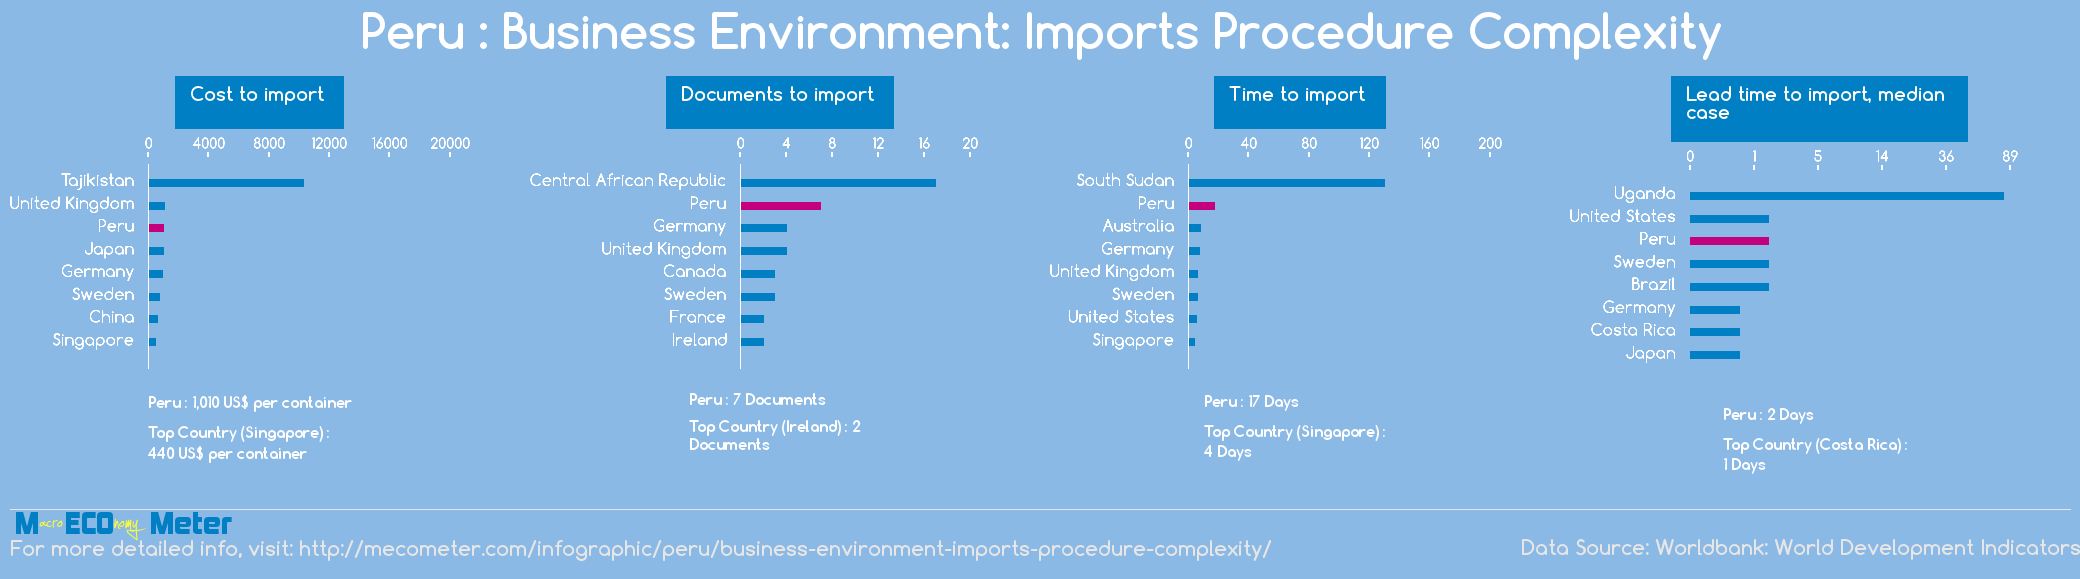 Peru : Business Environment: Imports Procedure Complexity